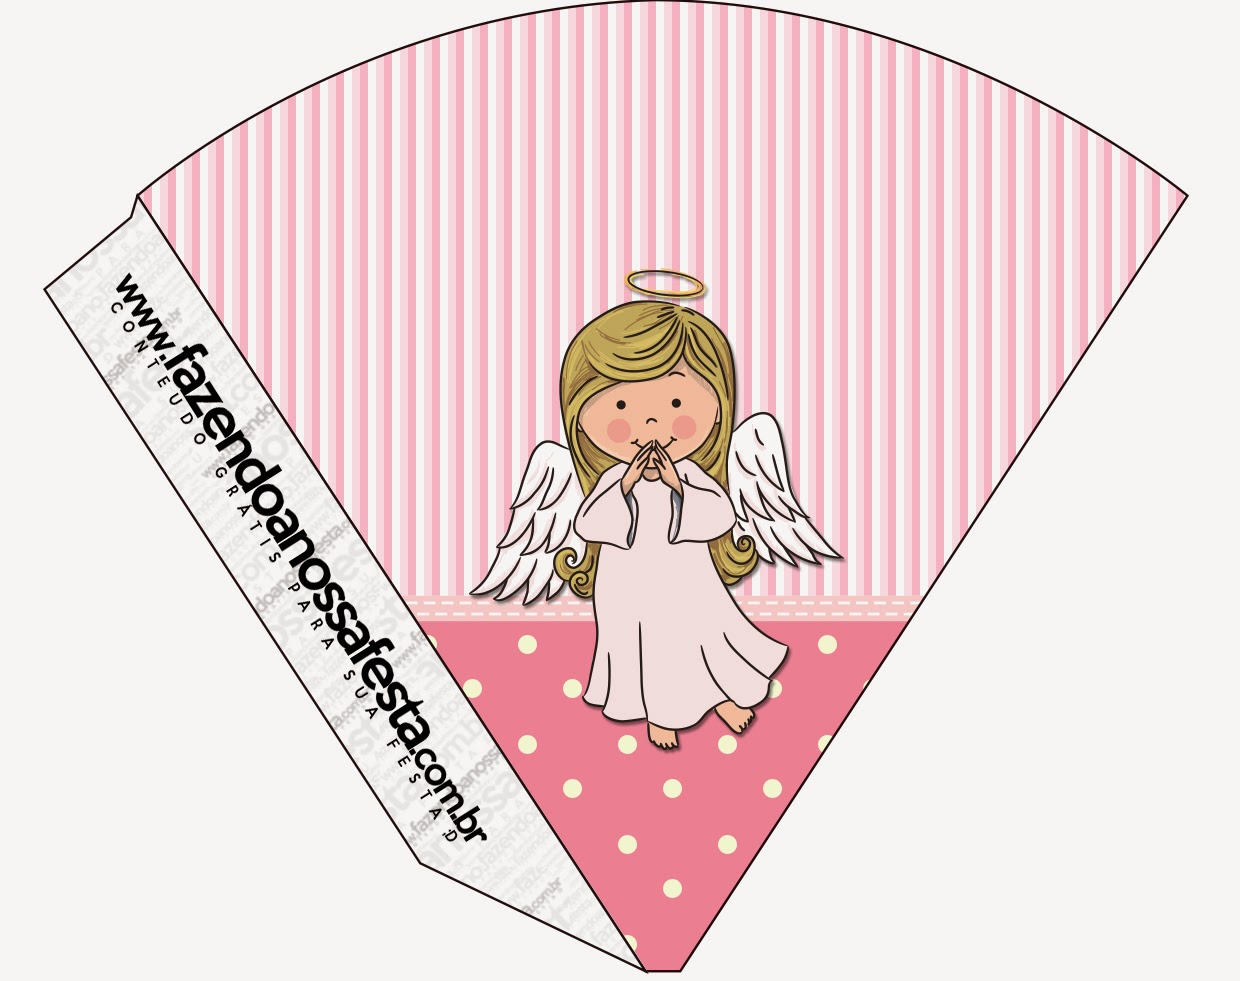 Angel girl free party printables is it for parties is it free free printable cones pronofoot35fo Images